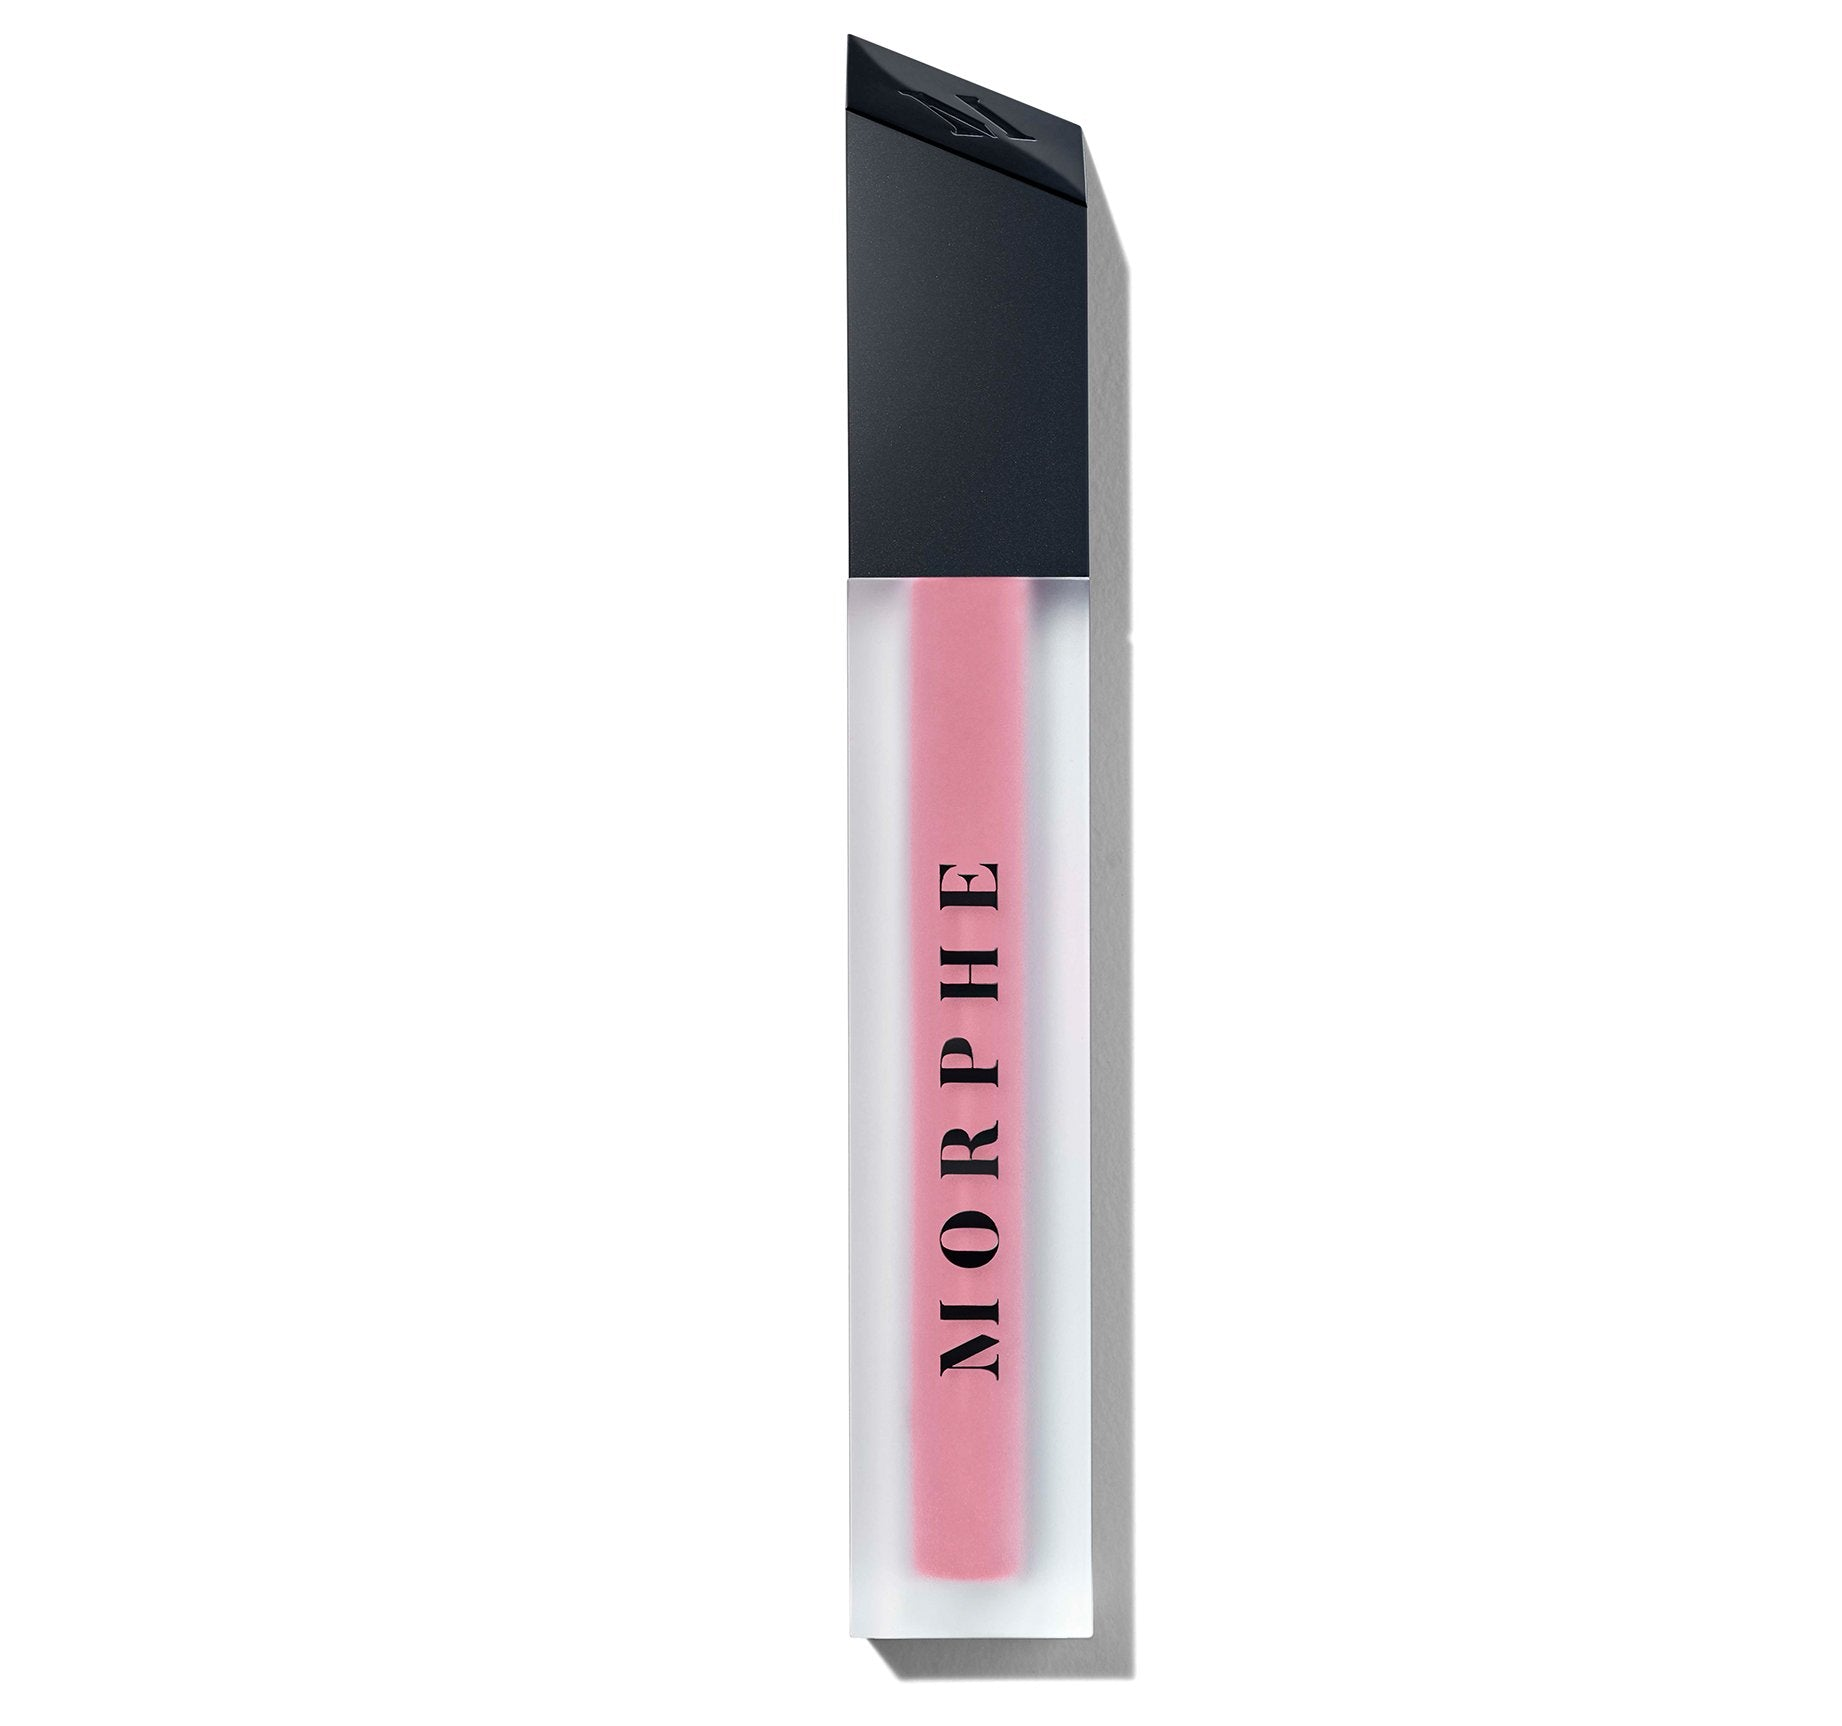 MATTE LIQUID LIPSTICK - VANITY, view larger image